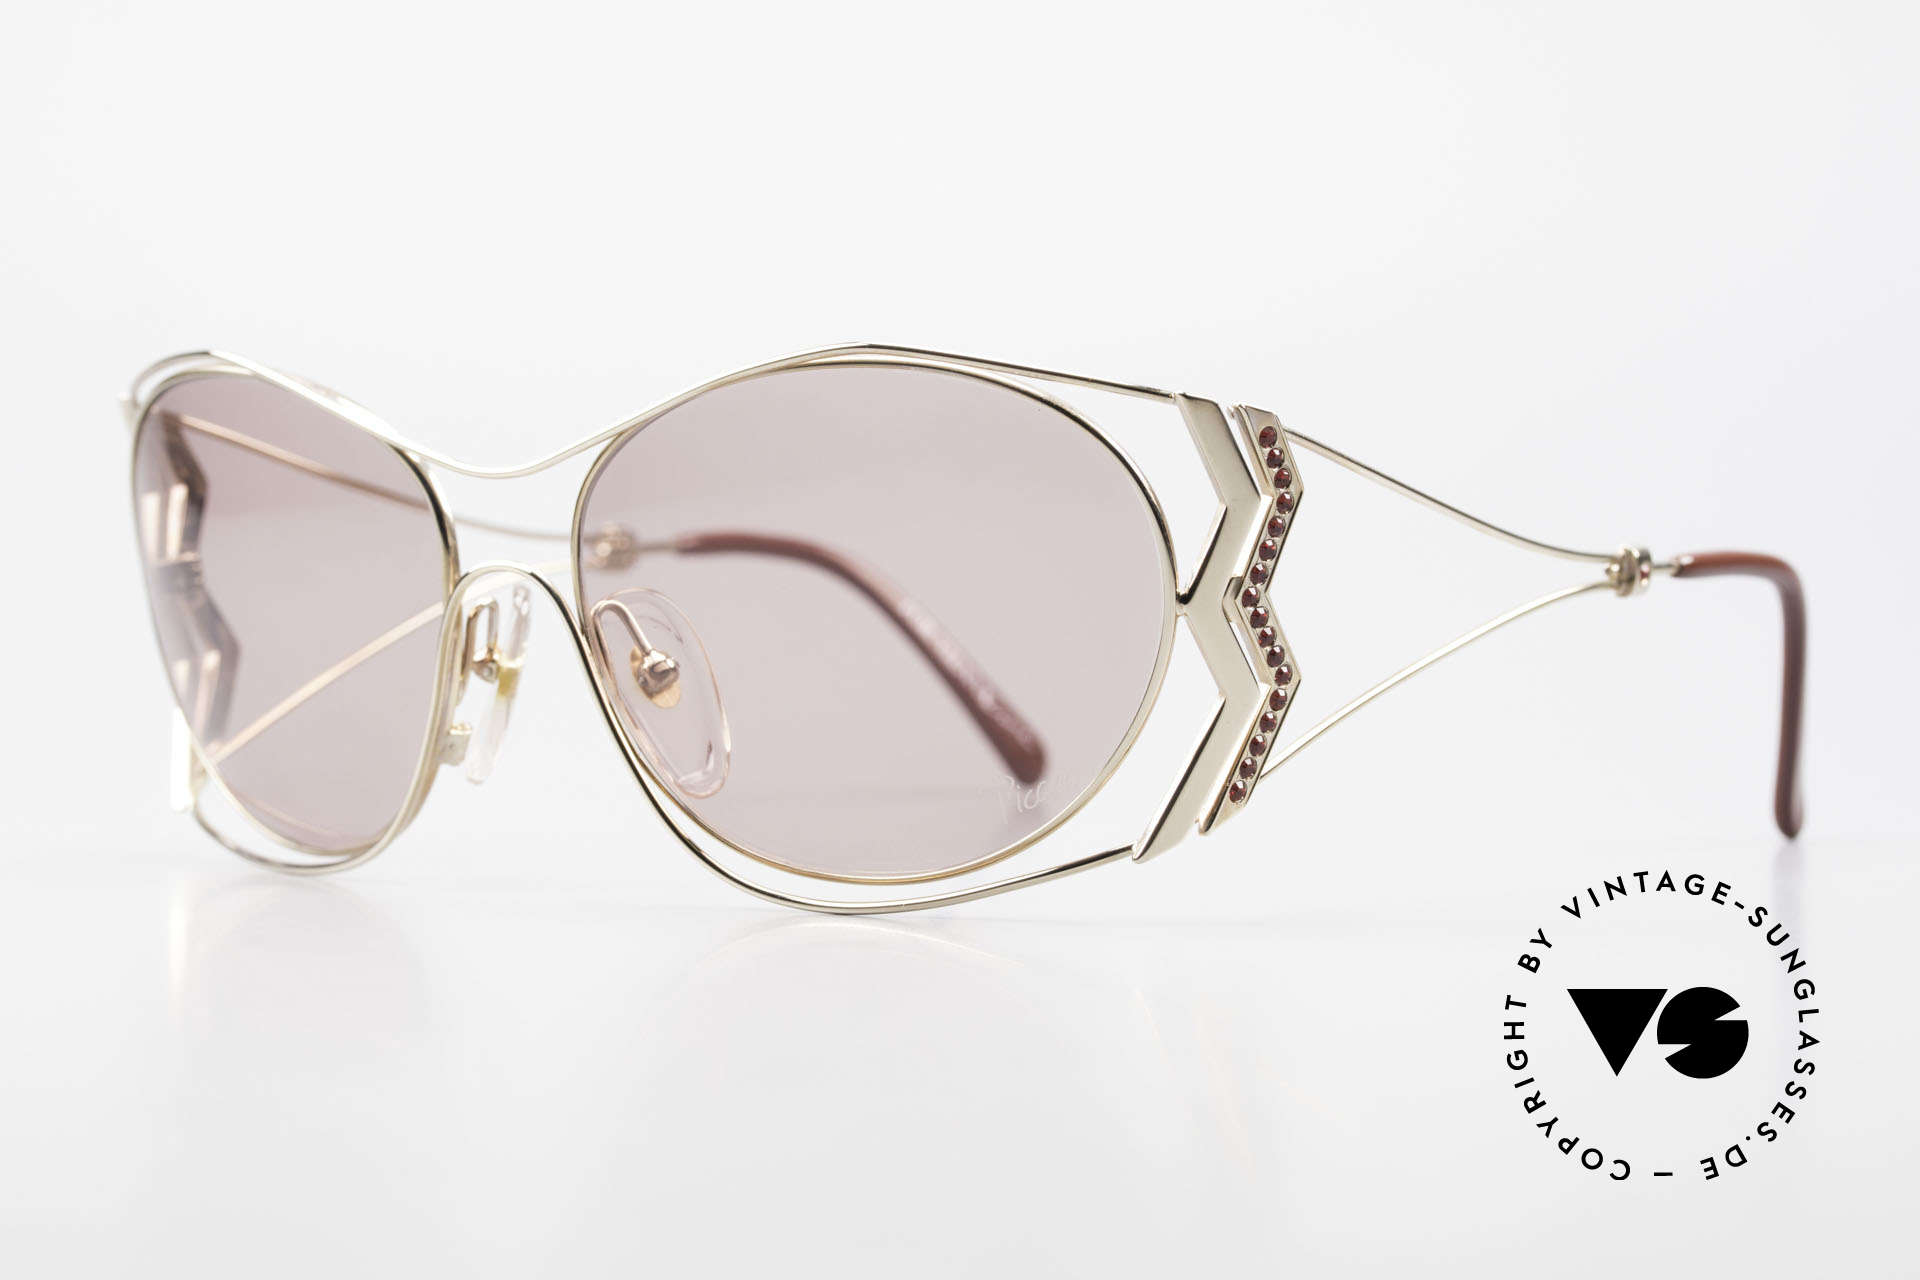 Paloma Picasso 3707 90's Sunglasses Rhinestones, probably the most beautiful vintage model by Picasso, Made for Women